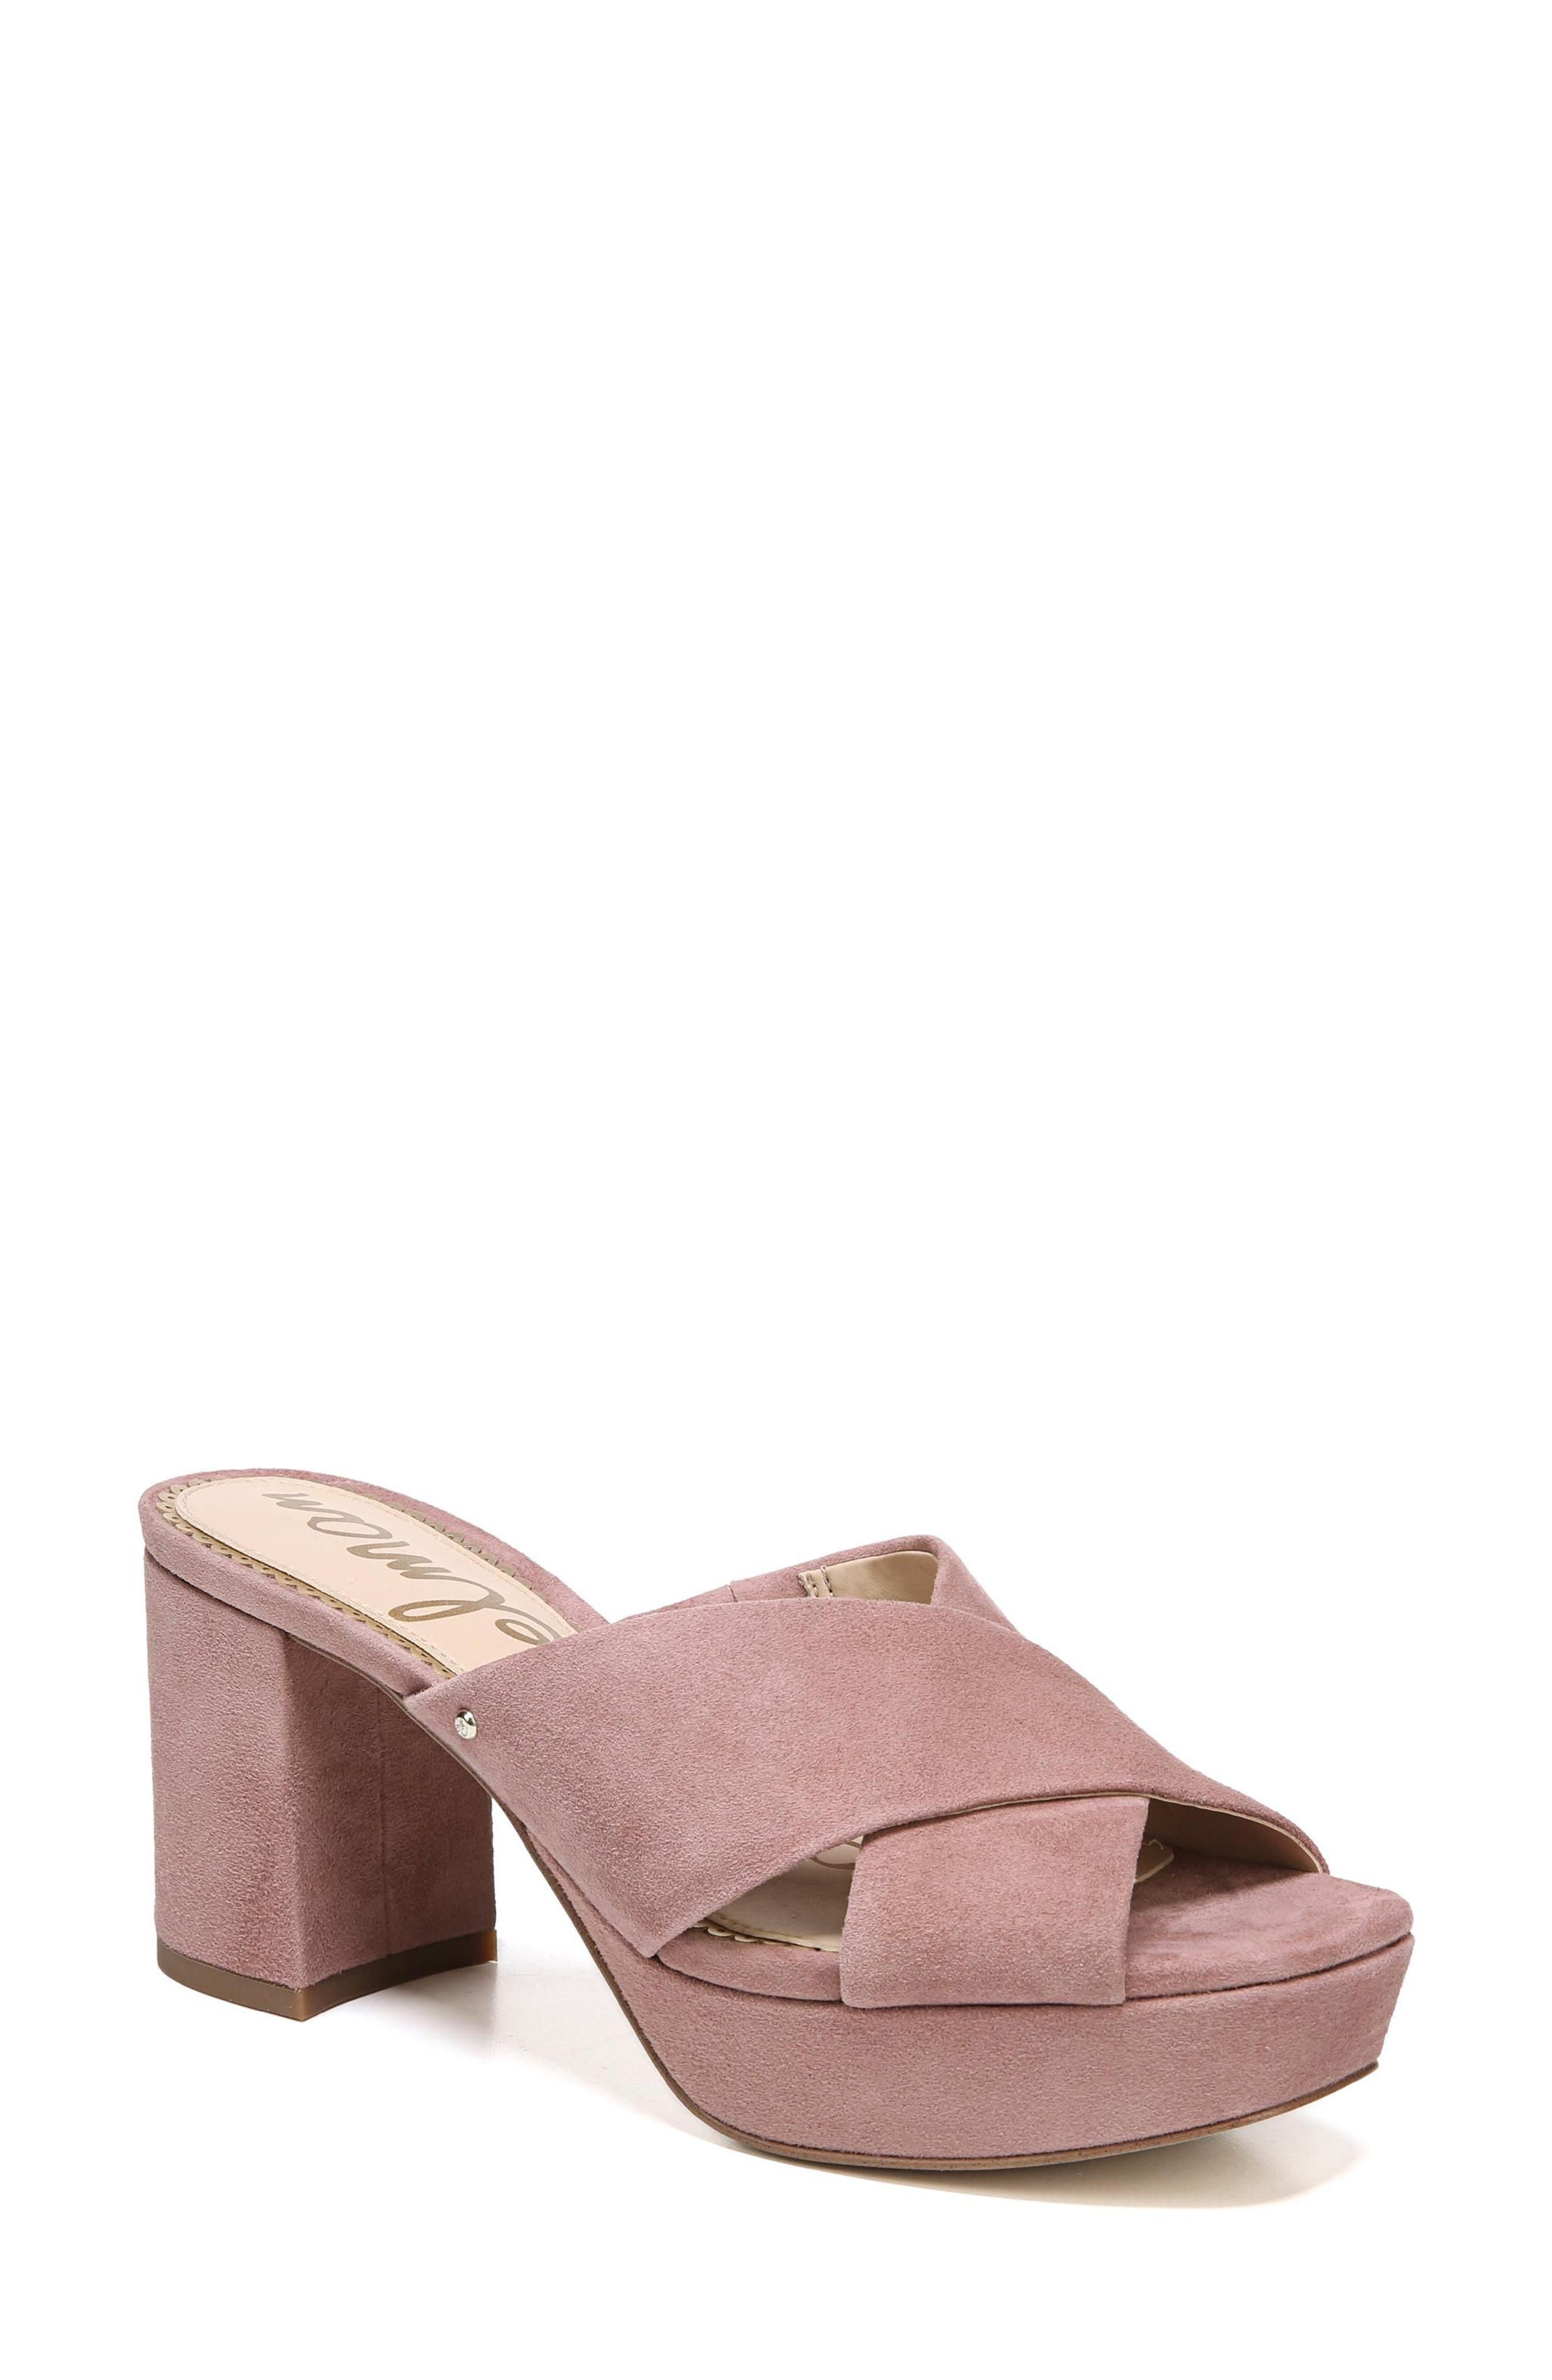 Jayne Sandal,                             Main thumbnail 1, color,                             Dusty Rose Suede